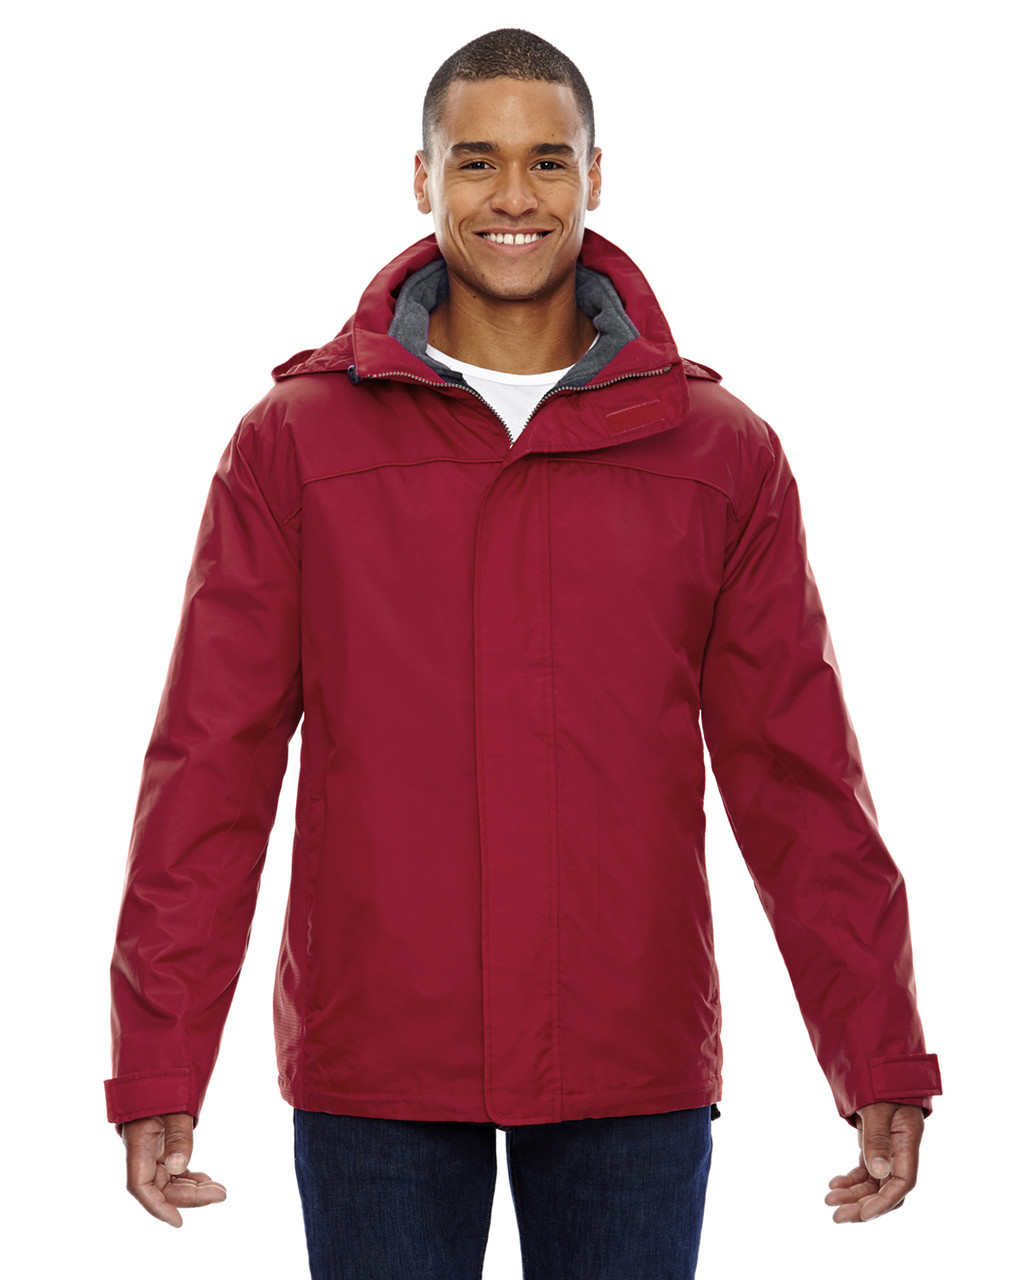 Molten Red - 88130 North End Men's 3-In-1 Jacket | Blankclothing.ca